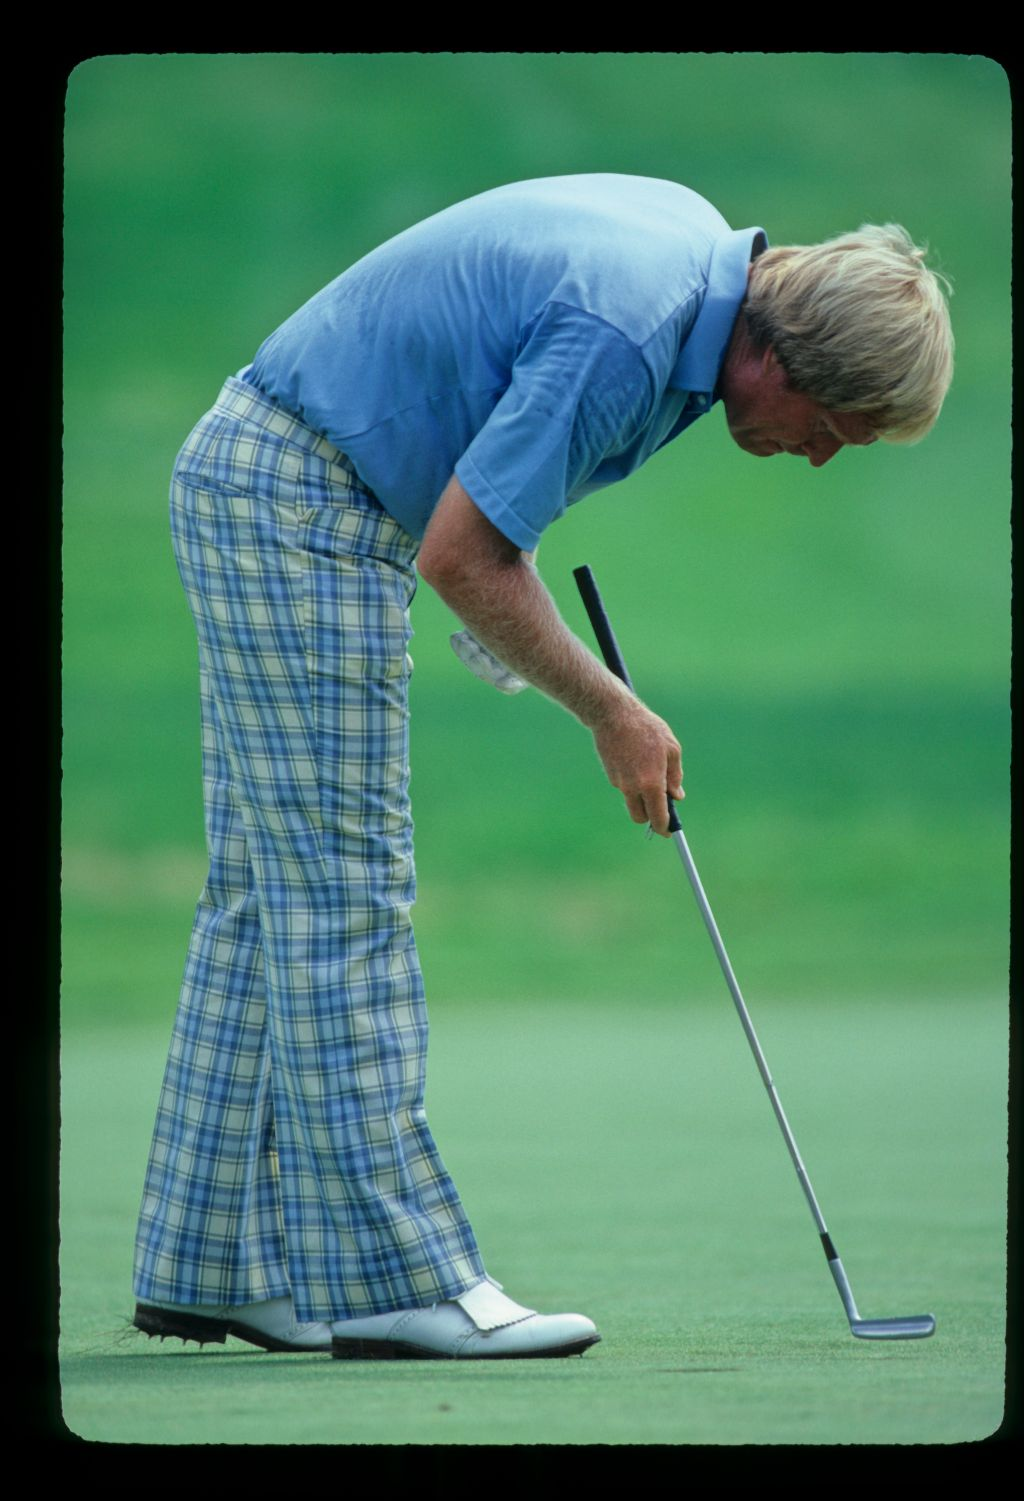 Jack Nicklaus tapping down a blemish on the green during the 1981 US Open